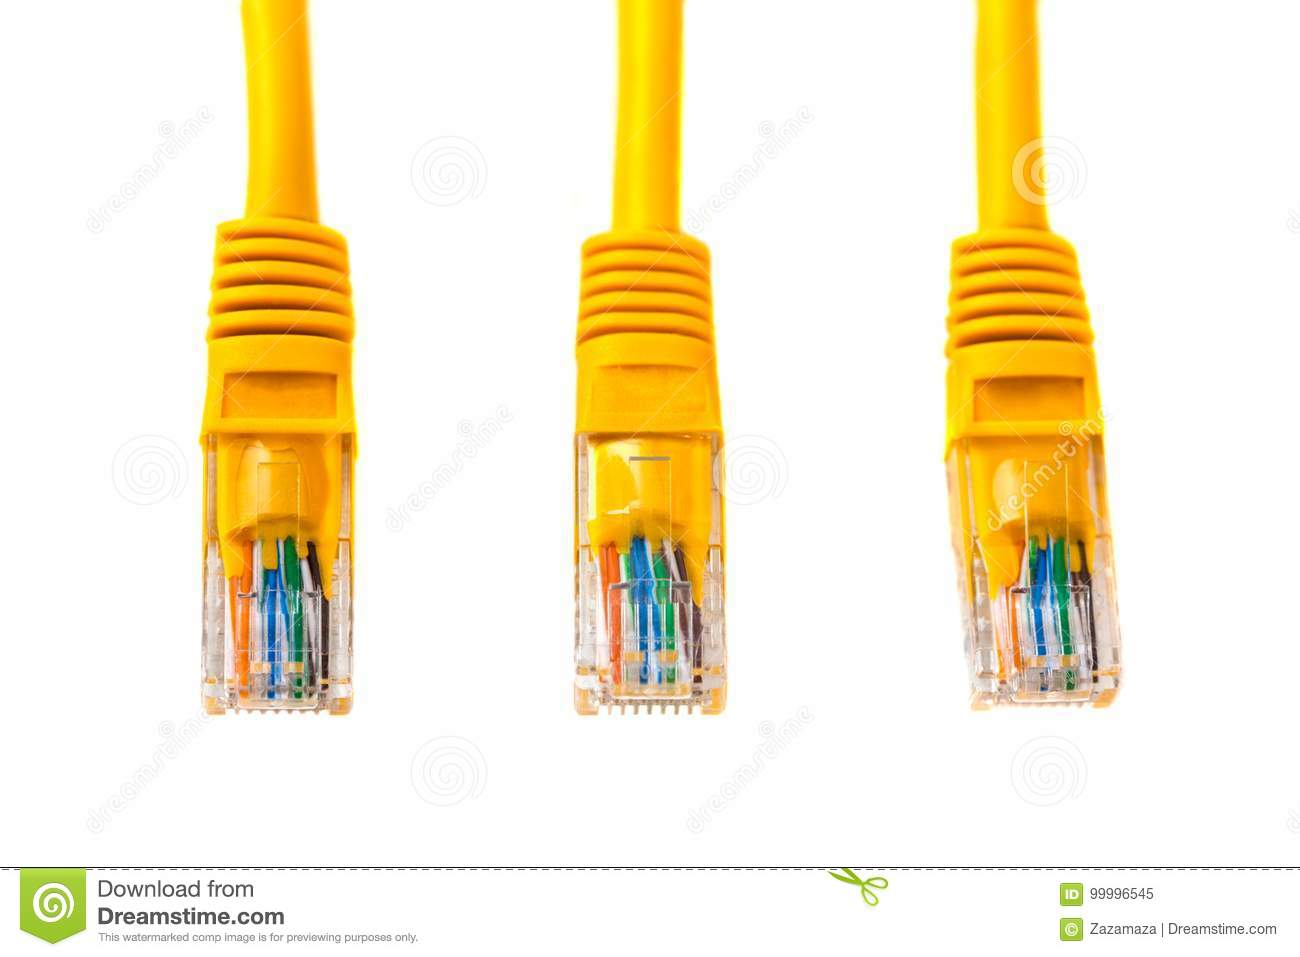 Wiring Up Rj45 Plug Smart Diagrams Cat6 Cable Three Heads Into Head Of An Ethernet Wire Or Yellow Rh Dreamstime Com Connector